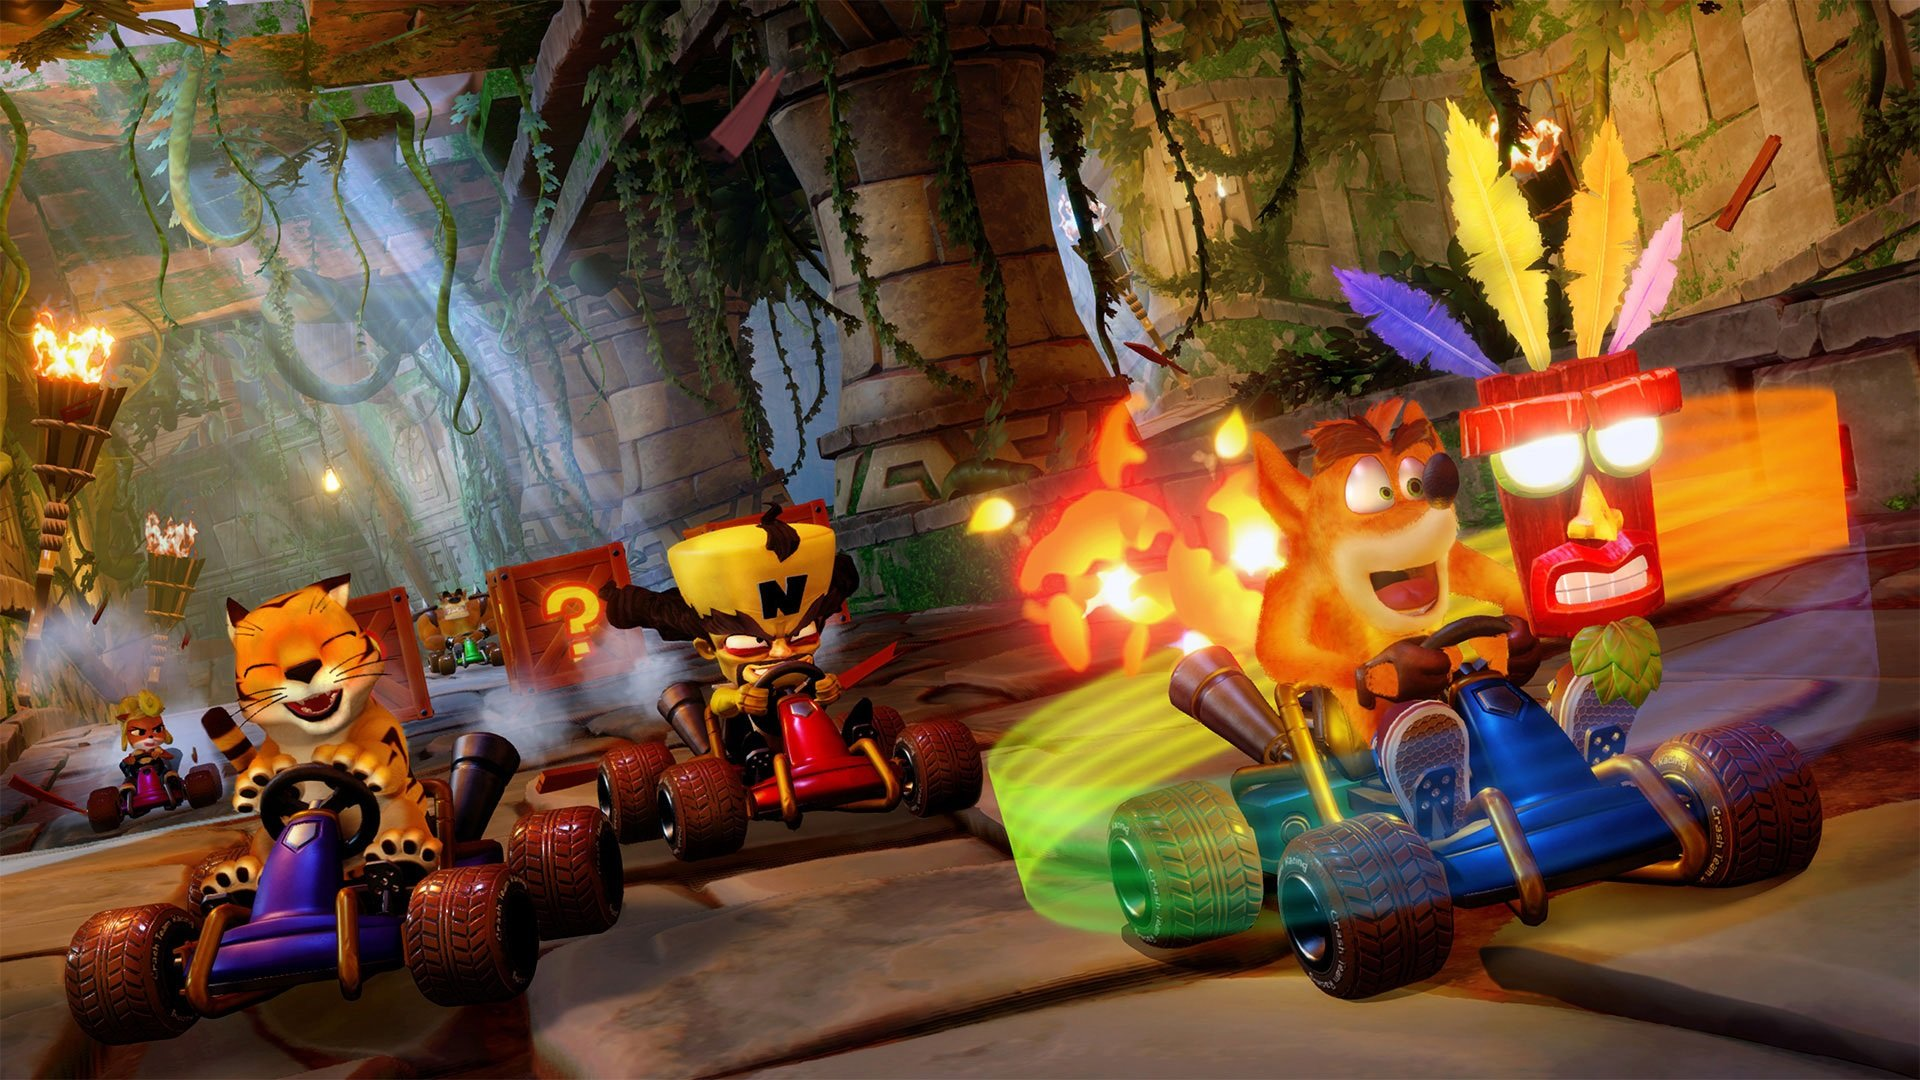 To unlock all characters in Crash Team Racing Nitro-Fueled, you'll need to play through the game, and earn Wumpa Coins to purchase characters from the Pit Stop.